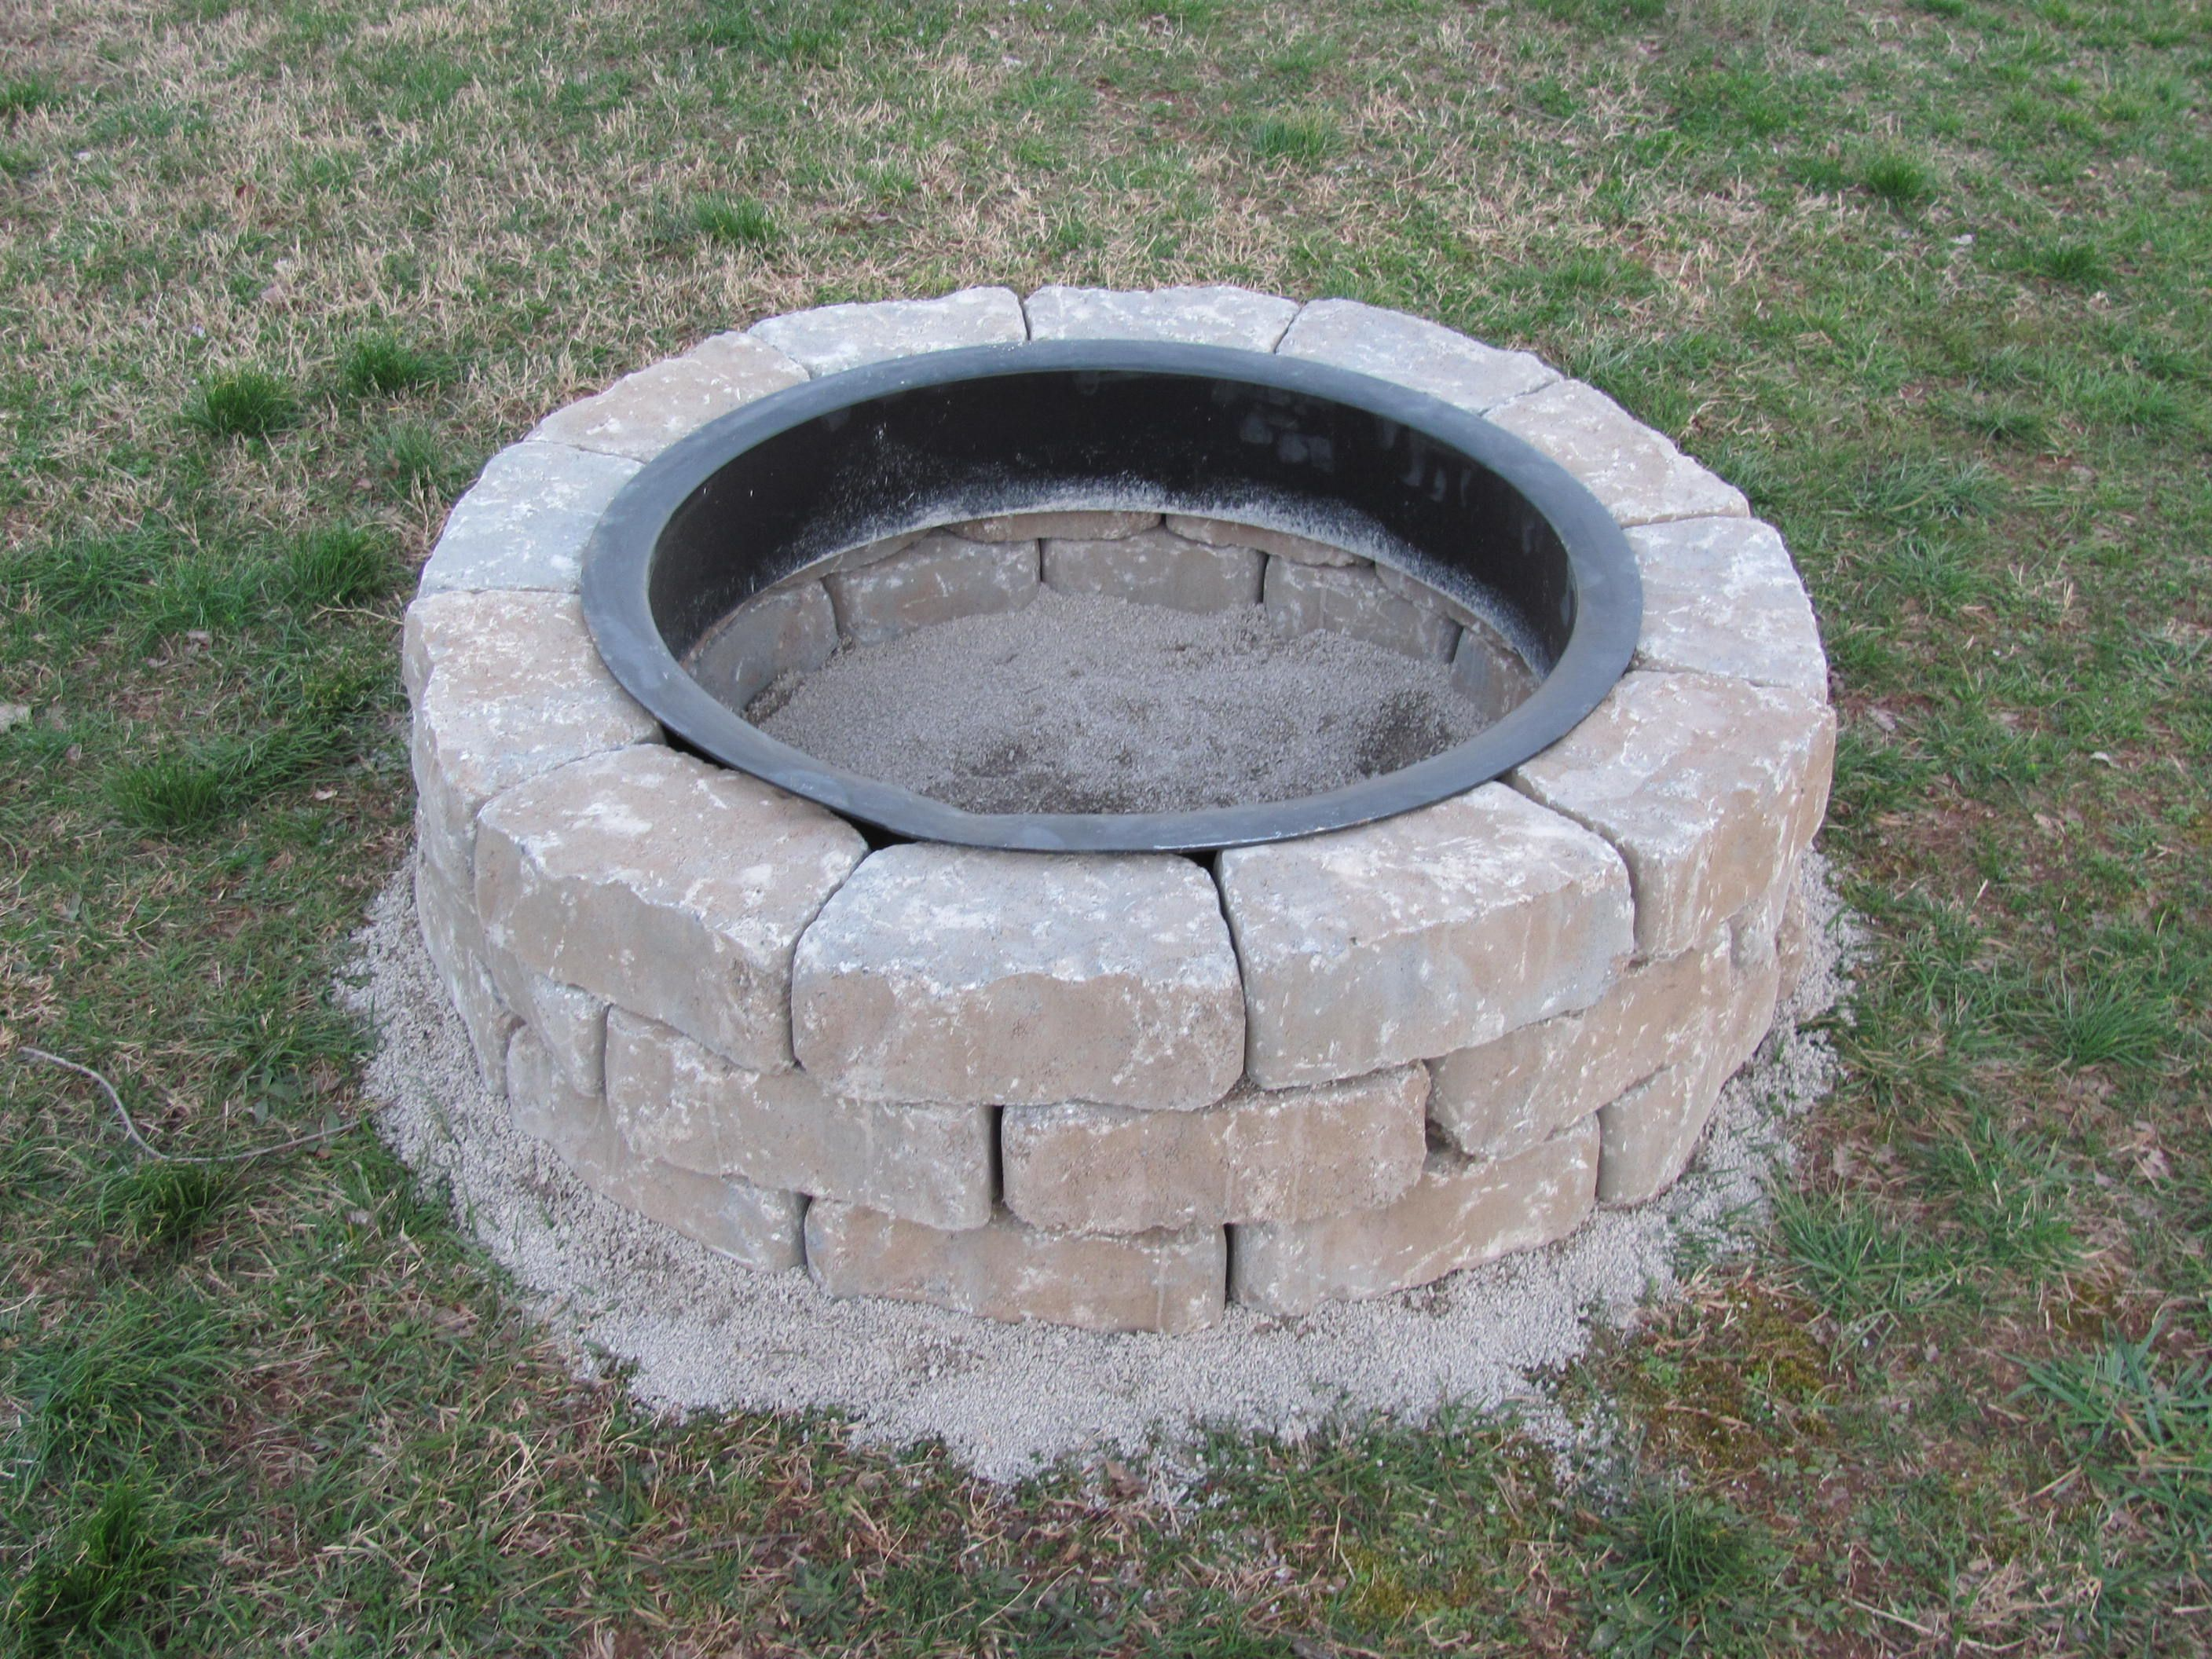 Lowes fire pit kit weekend project 1 garden for Lowes fire pit